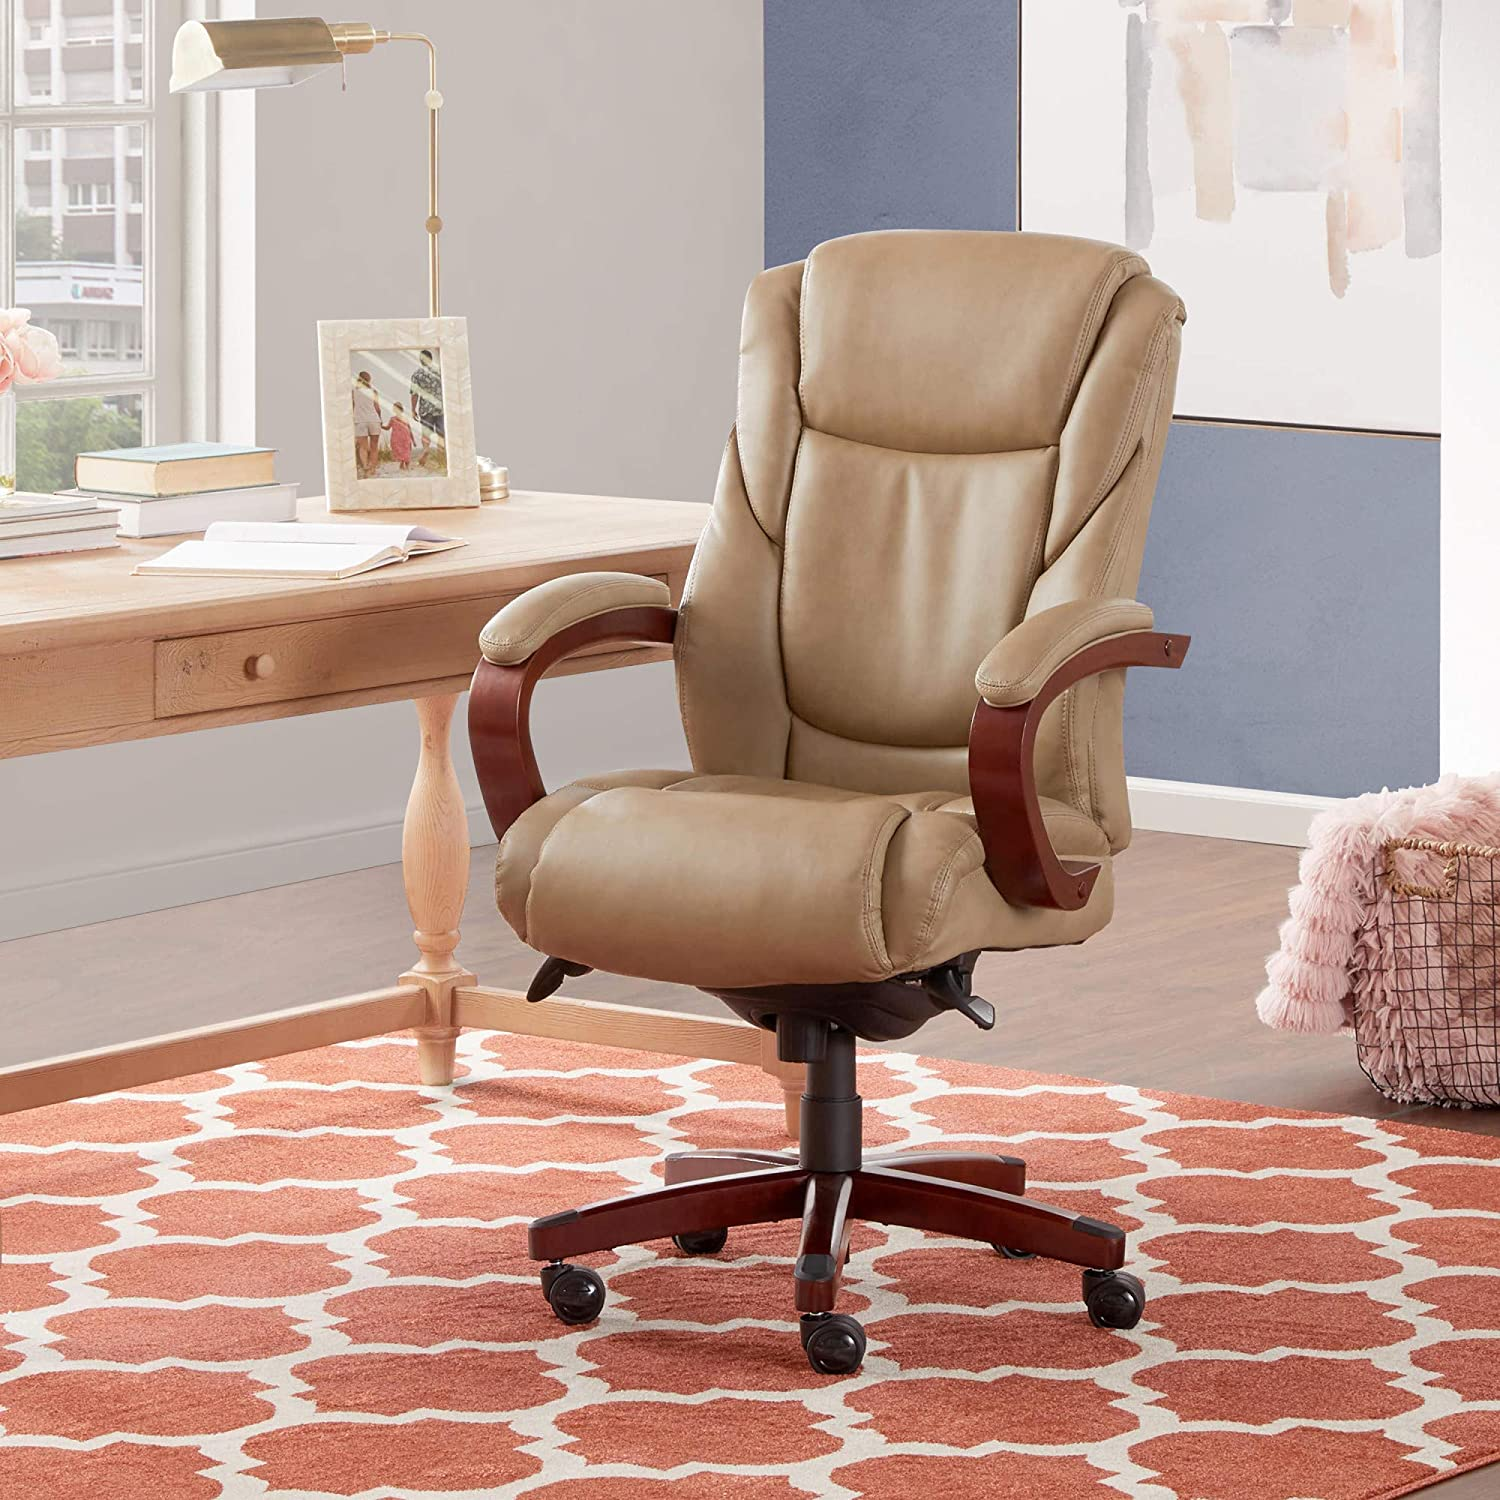 36 Most Comfortable La-Z-Boy Office Chairs & Alternatives (36)